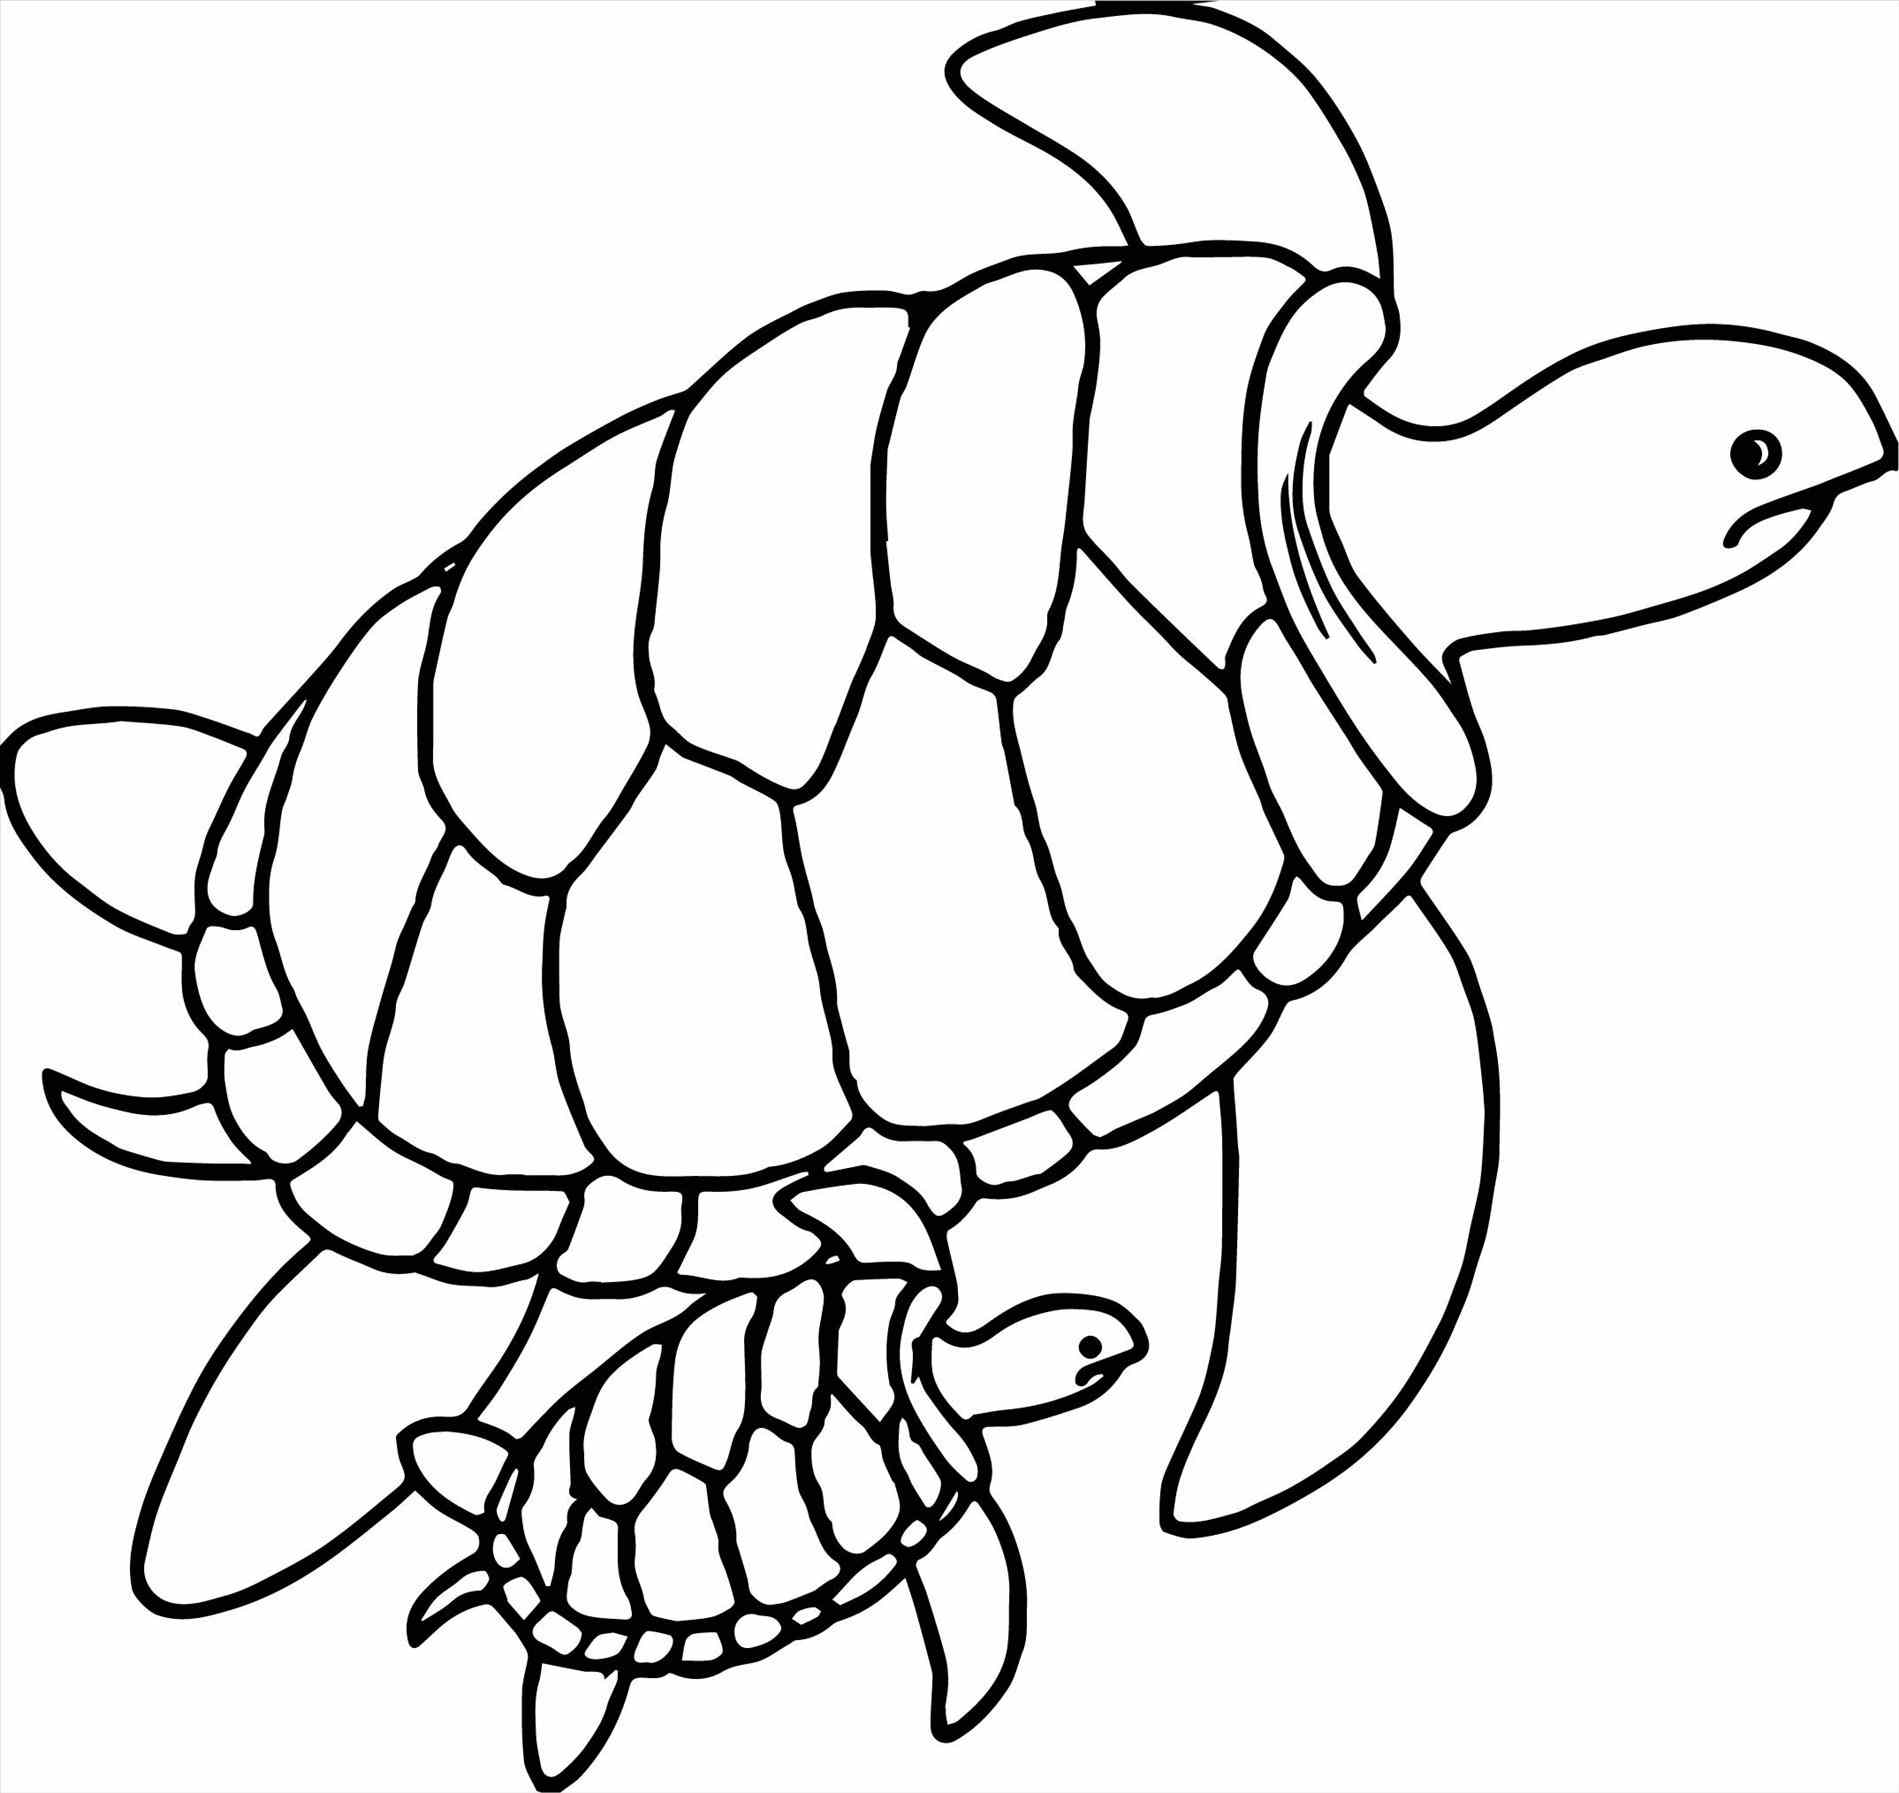 1899x1793 Coloring Pages Kids Print Out Animal Elephant Coloring Pages